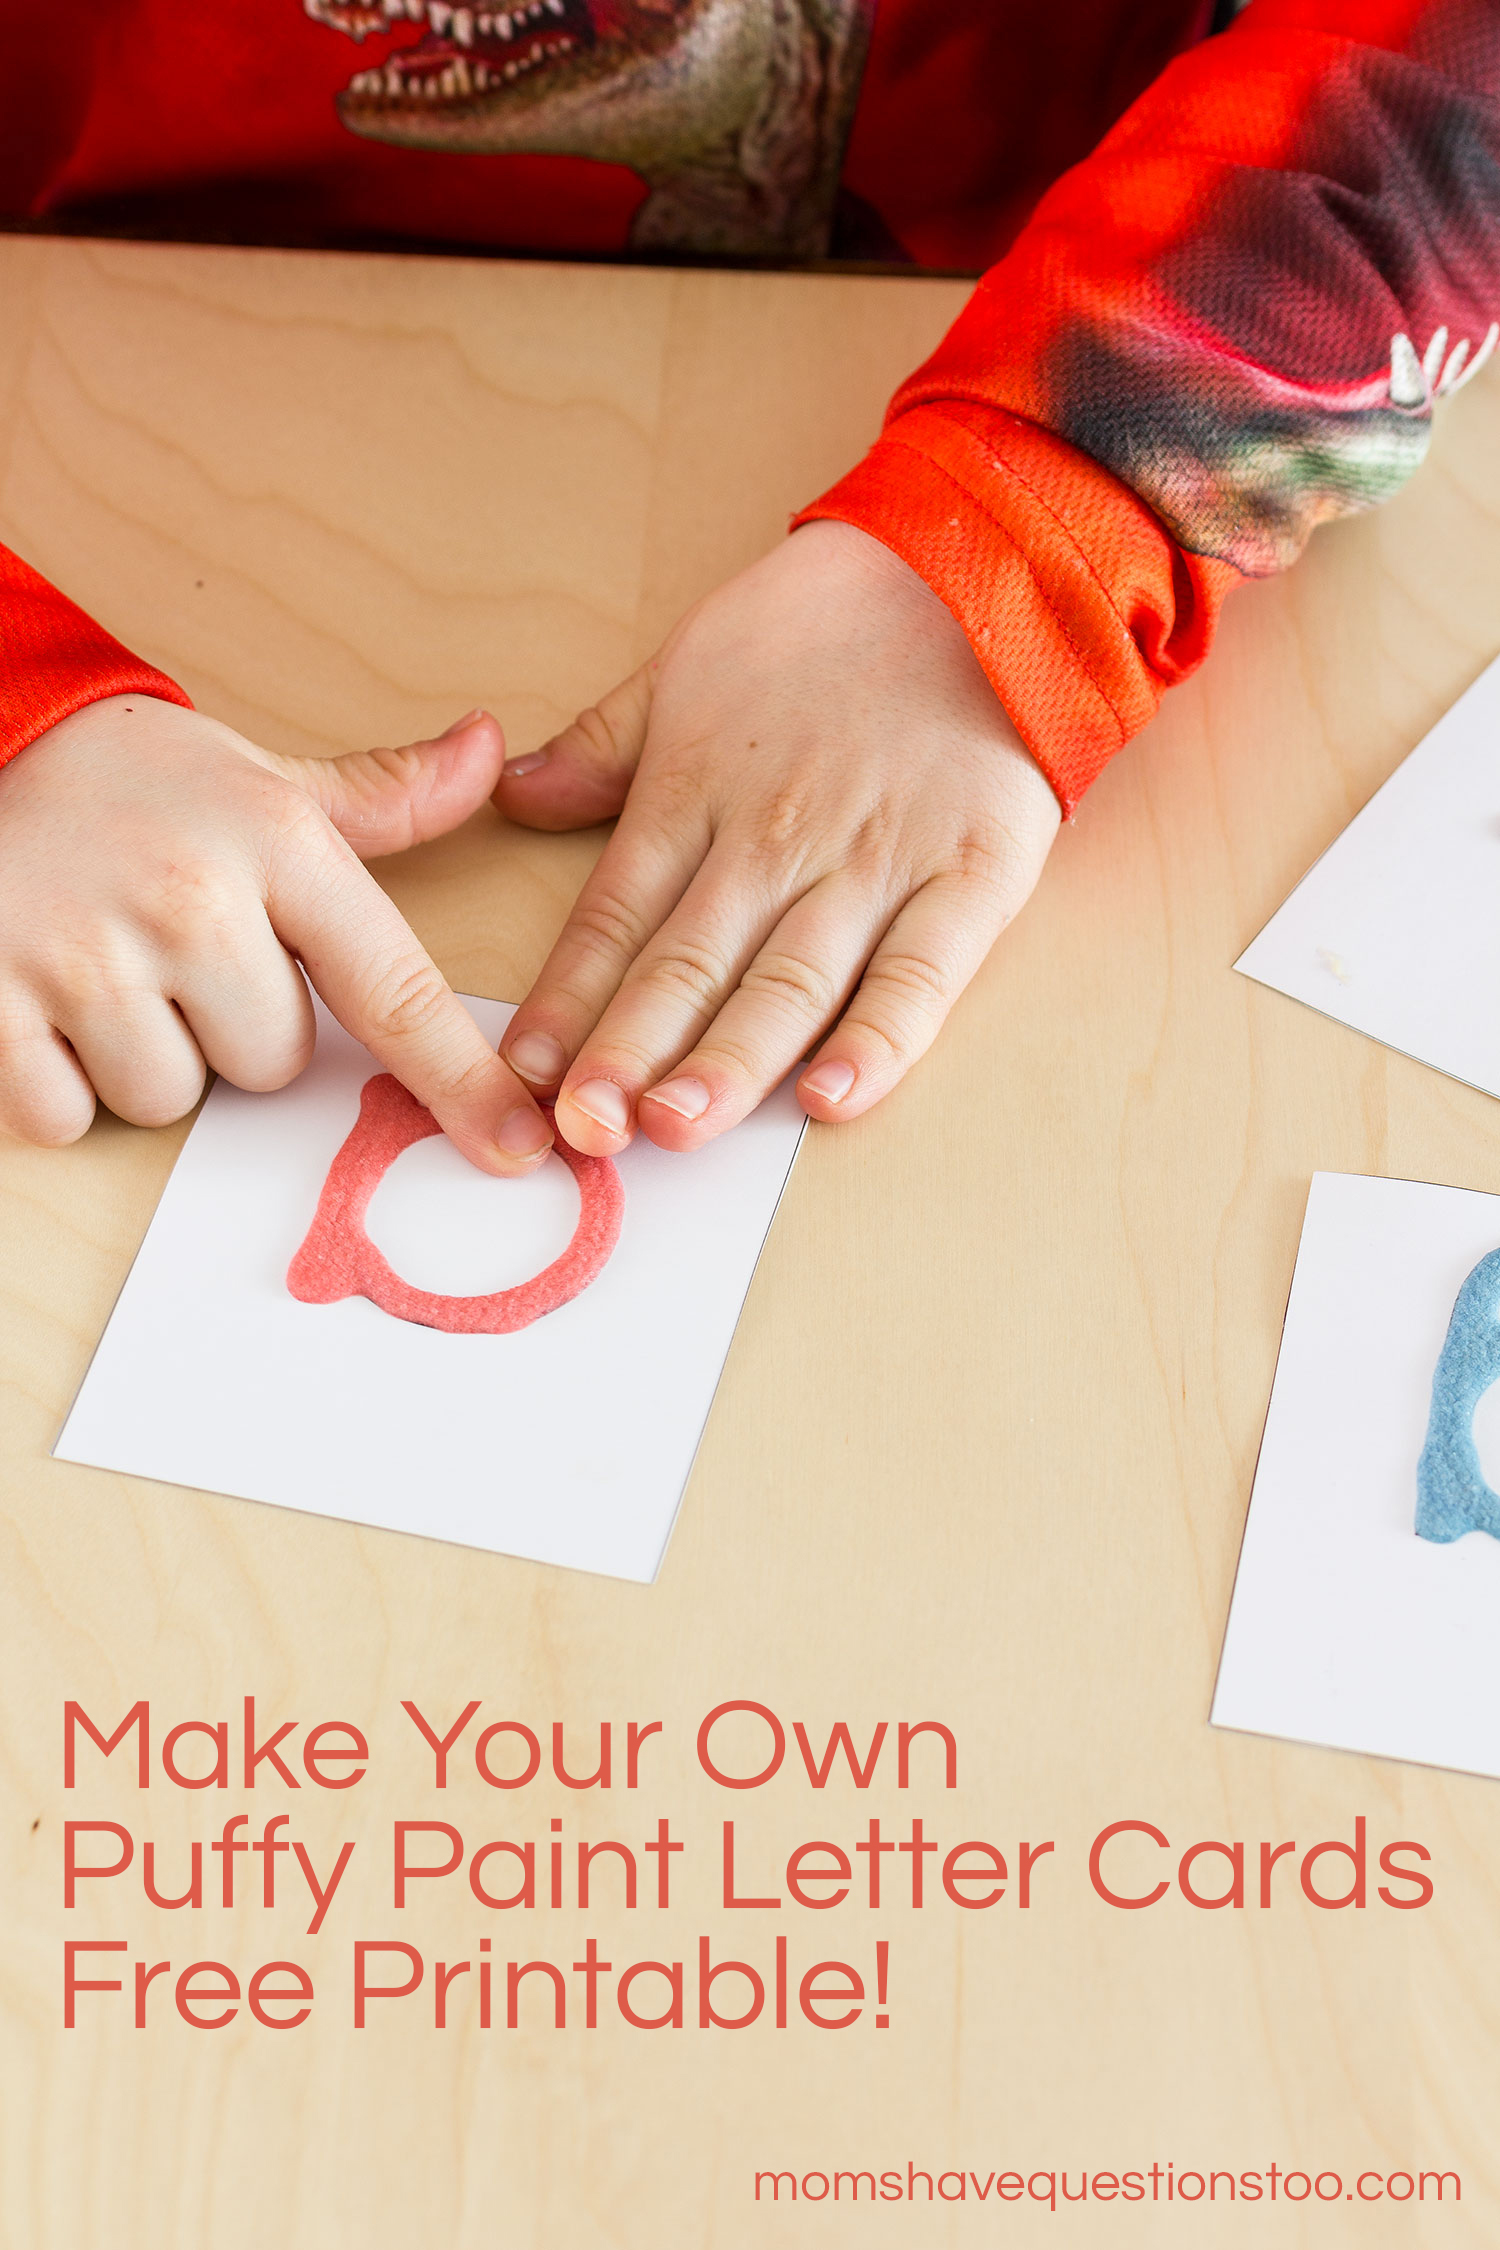 puffy paint letter cards montessori sandpaper letters alternative moms have questions too